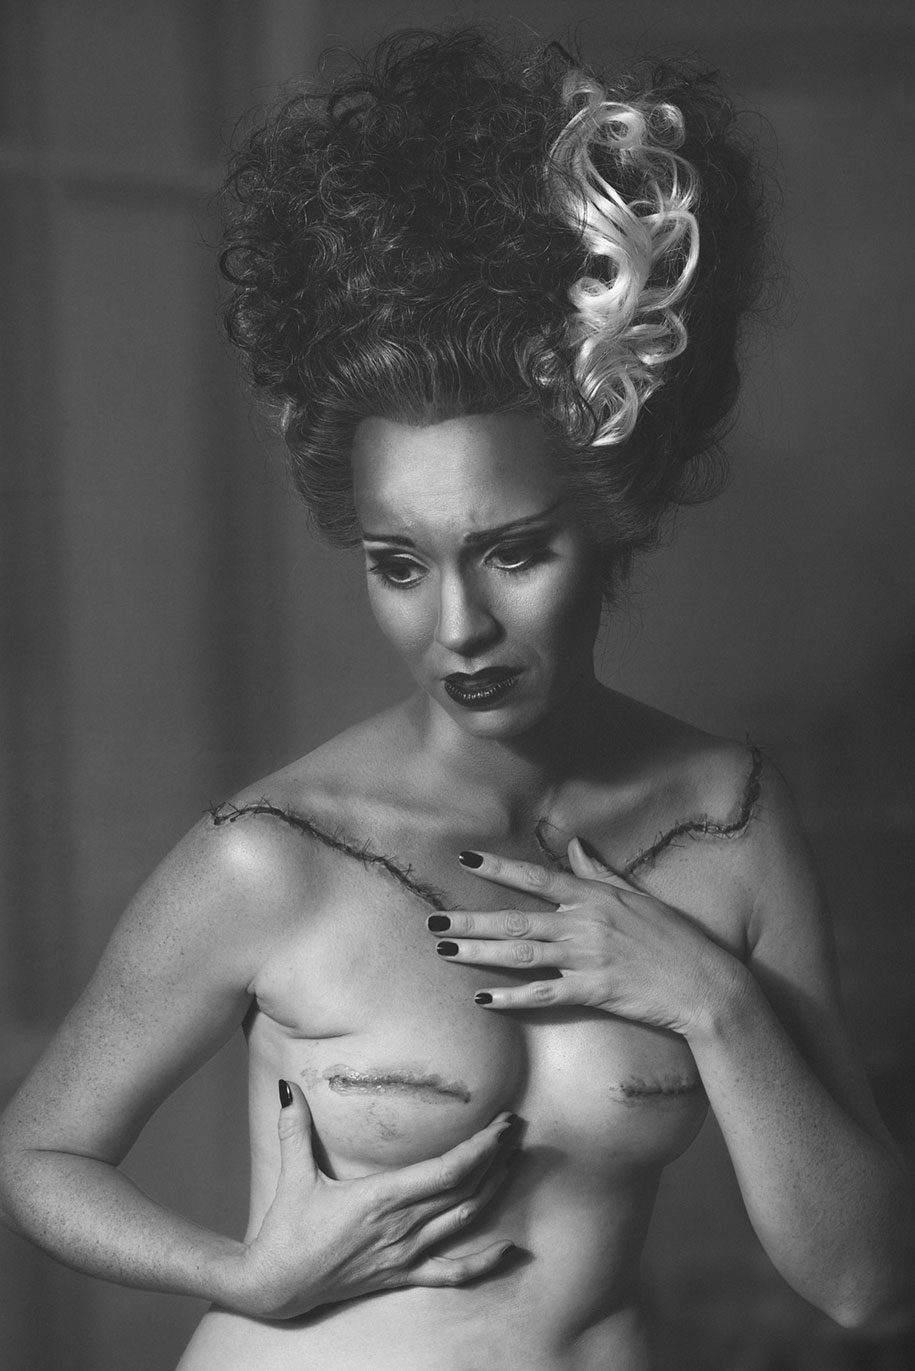 cancer-mastectomy-photo-series-my-breast-choice-aniela-mcguinness-2